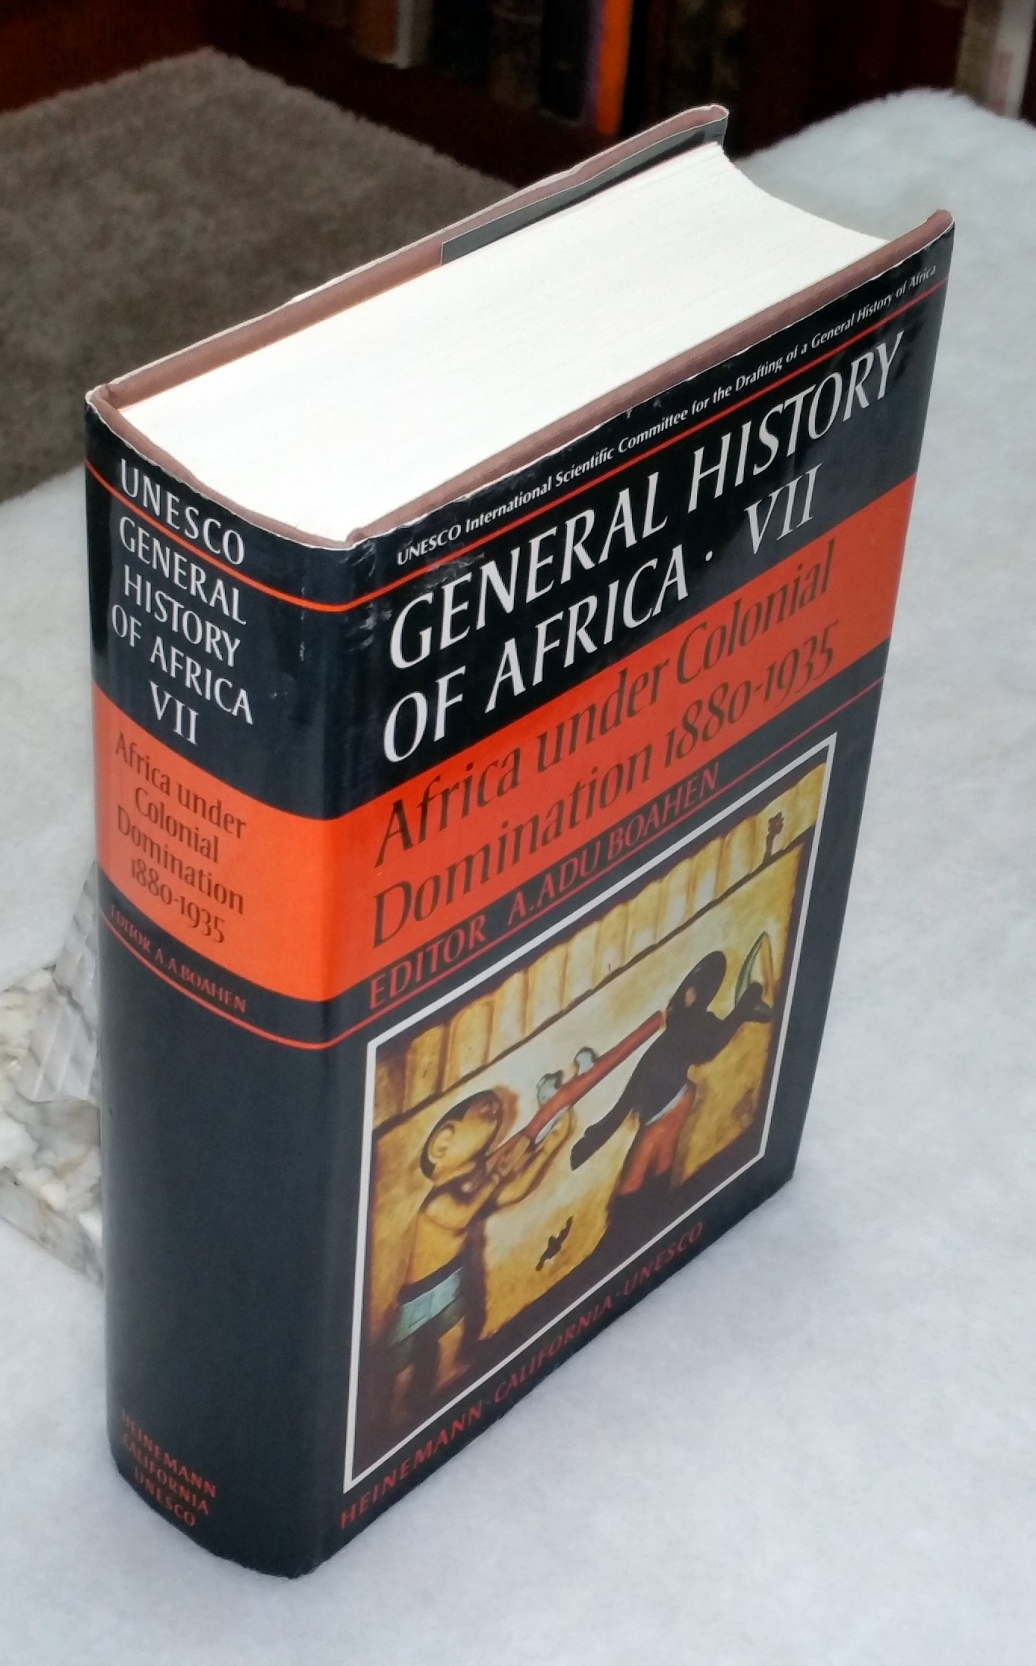 Image for General History of Africa, VII: Africa Under Colonial Domination 1880-1935 (Volume VII ONLY of the Eight Volume set)